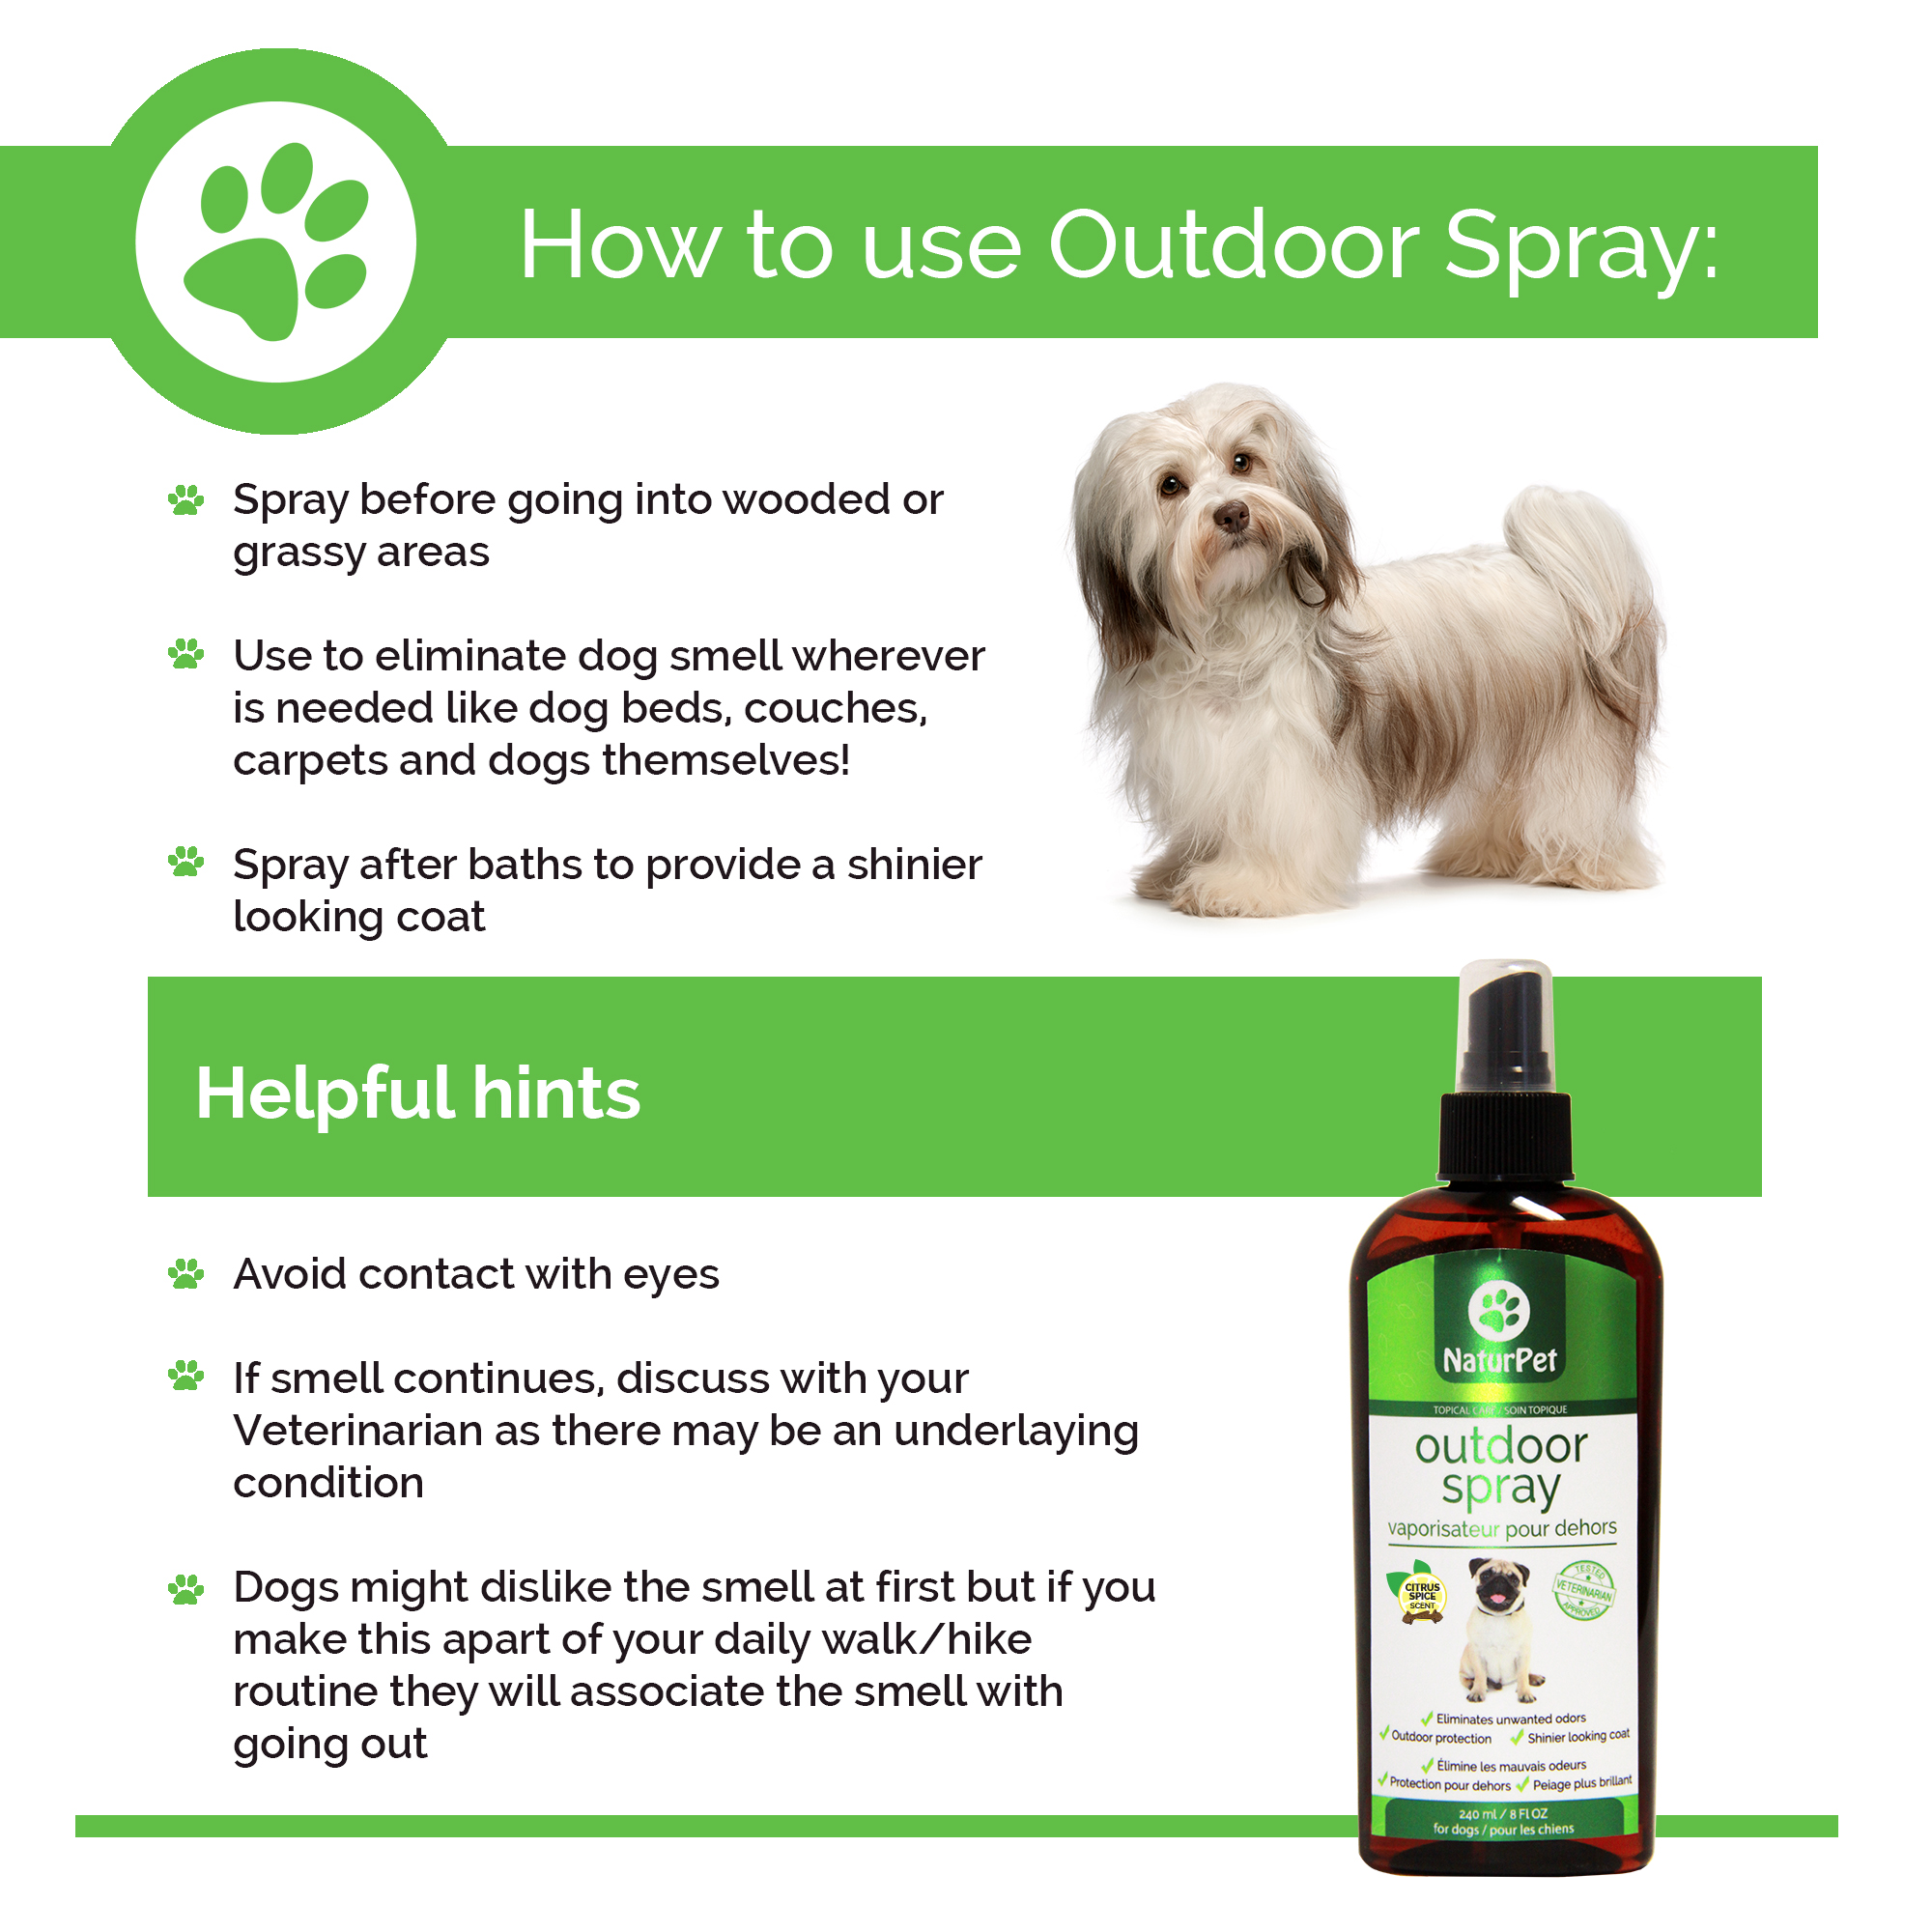 Naturpet Natural insect repellent for dogs. Vet approved. Made in Canada.